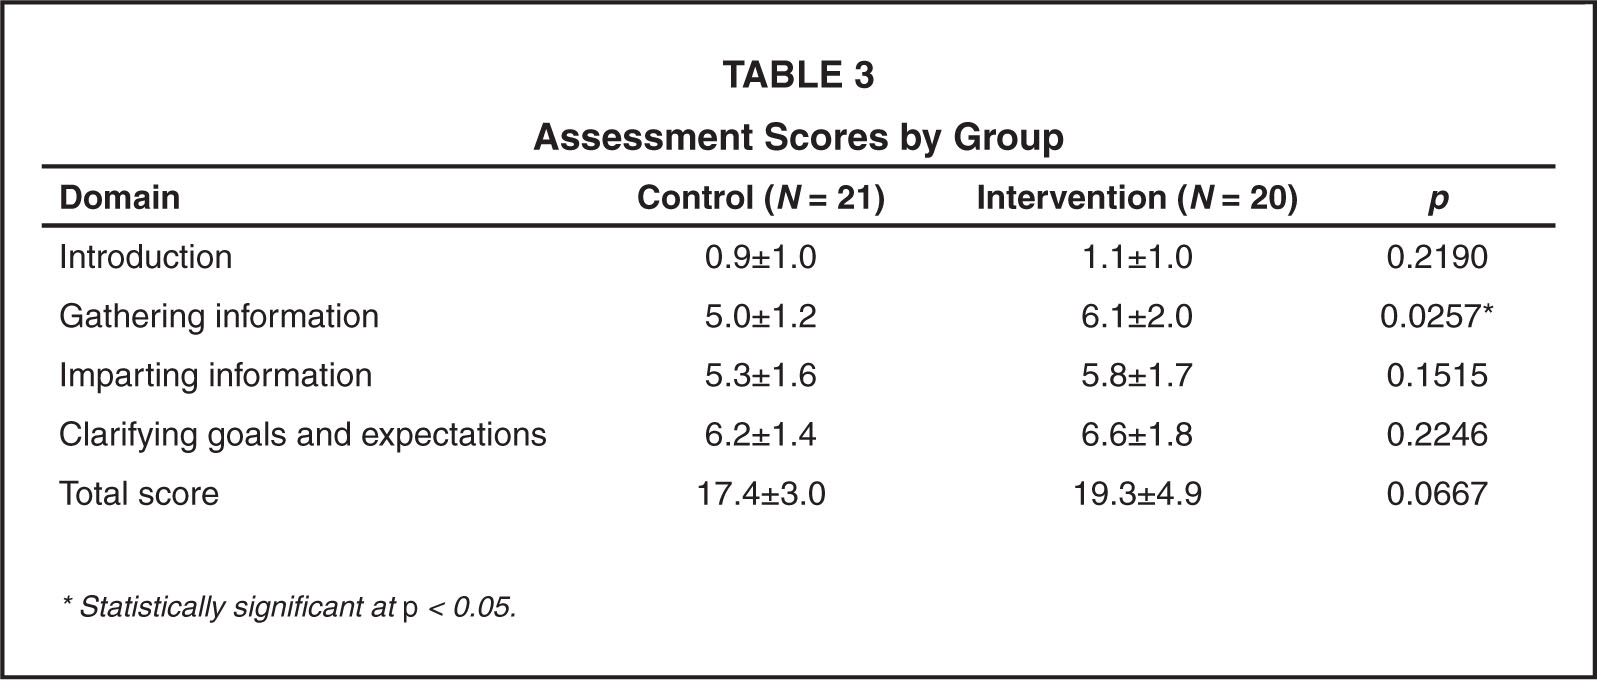 Assessment Scores by Group